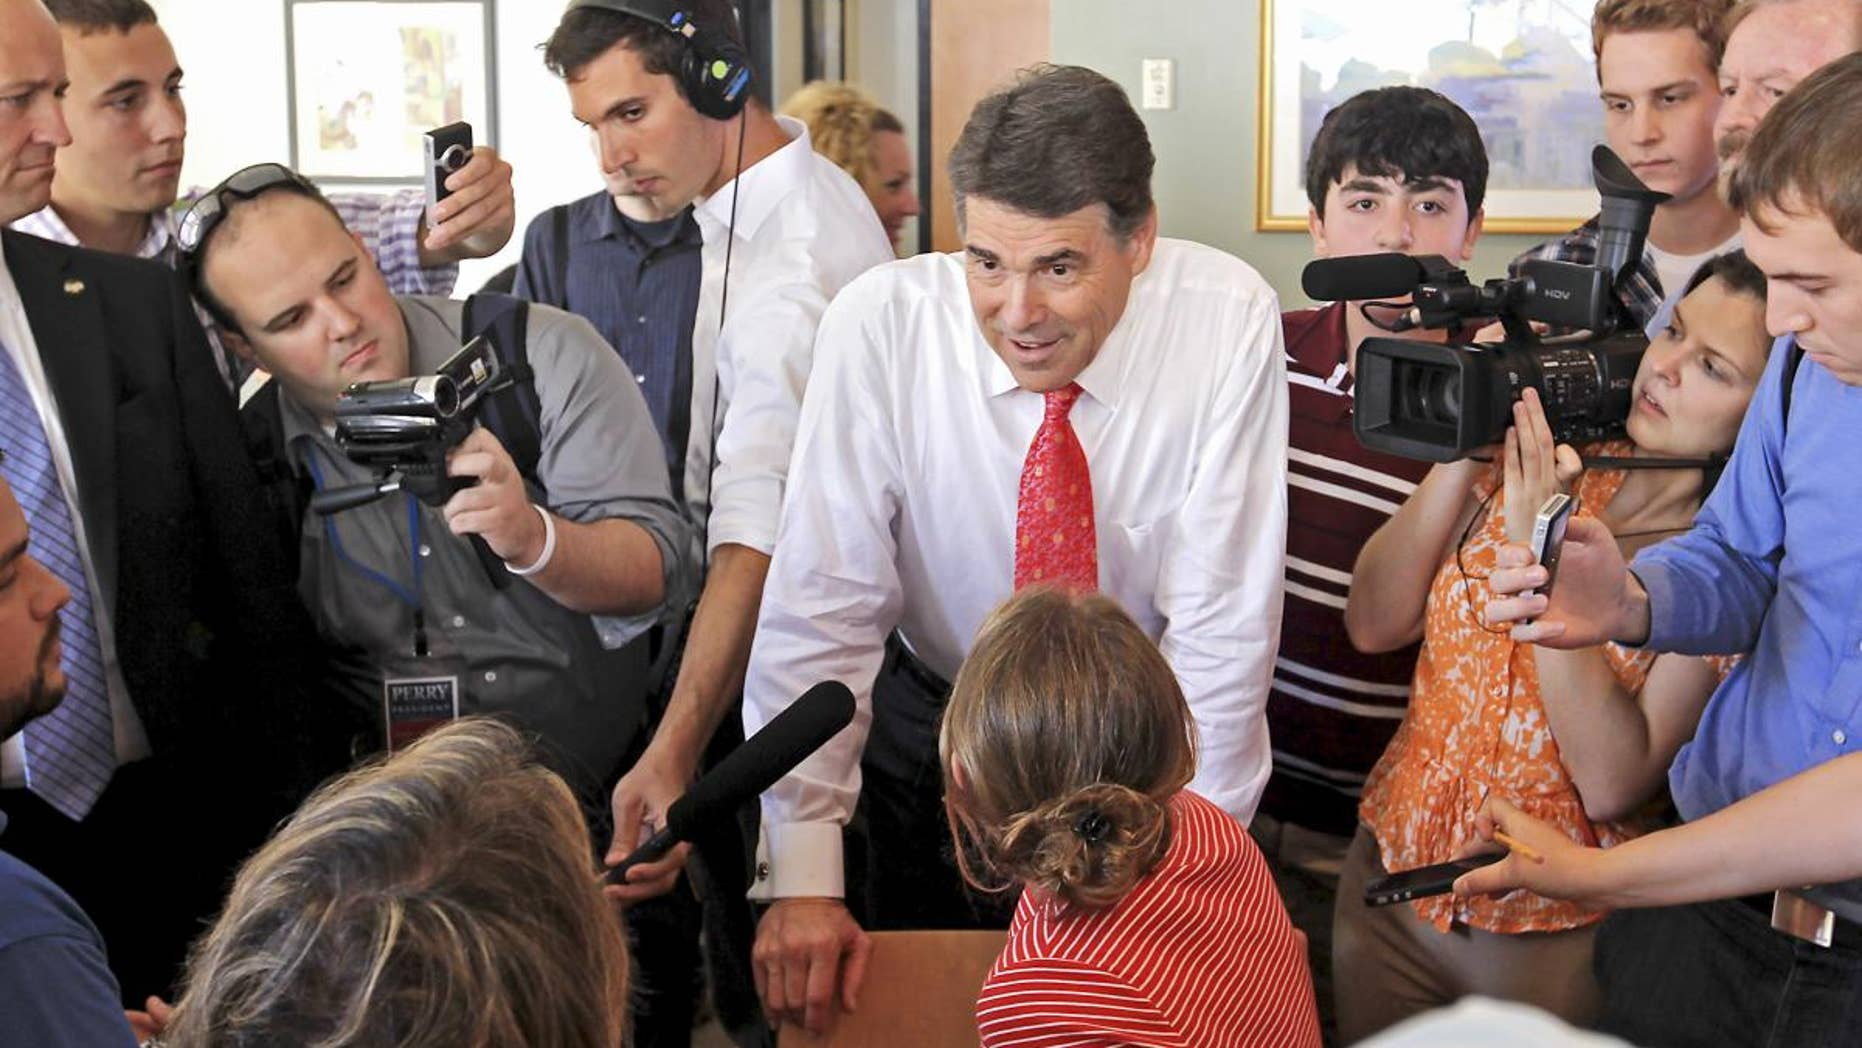 Republican presidential candidate, Texas Gov. Rick Perry talks with locals in a cafe during a visit to downtown Portsmouth, N.H., Thursday, Aug. 18, 2011. (AP Photo/Cheryl Senter)